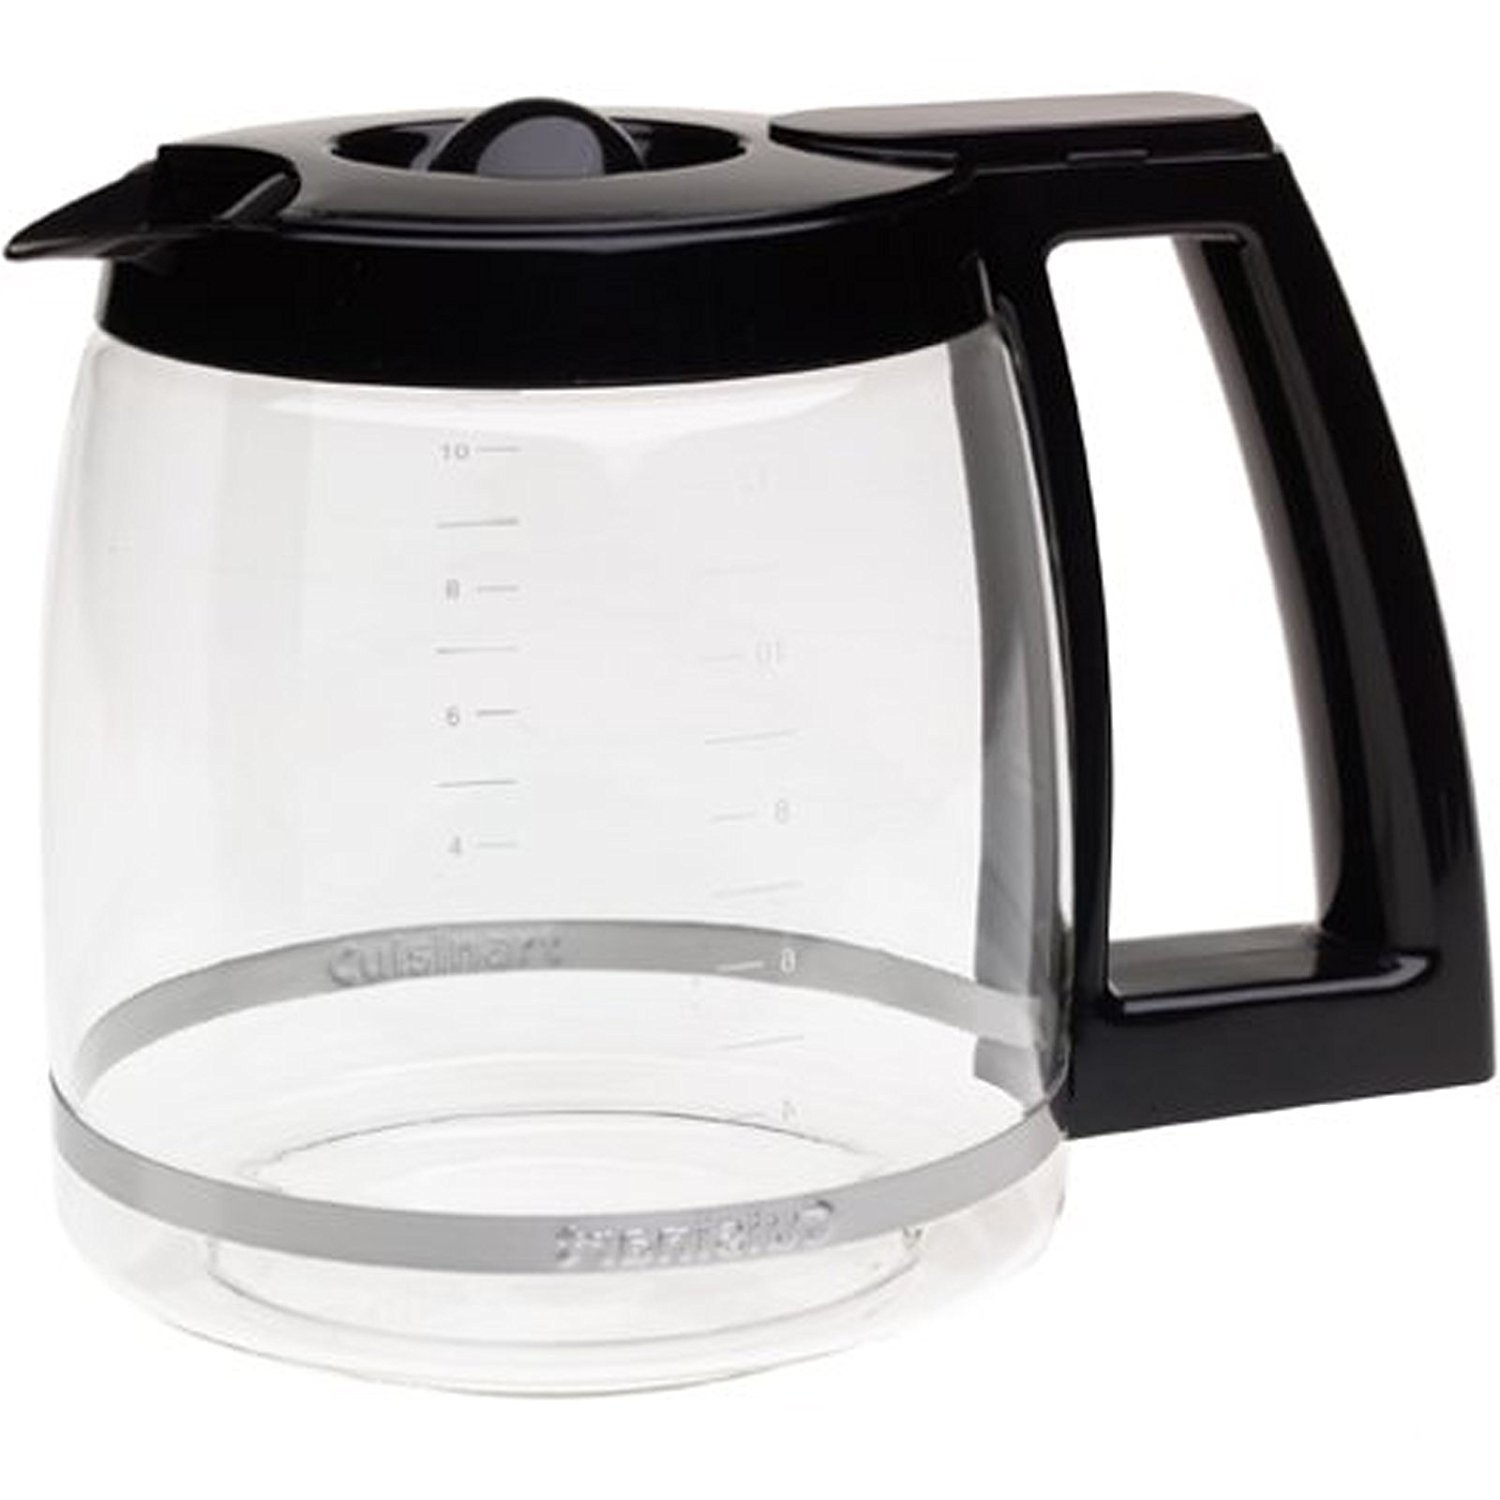 Amazon Cuisinart Stock Pot Cuisinart 12 Cup Coffee Maker Carafe Cbc00bkpc1 Glass